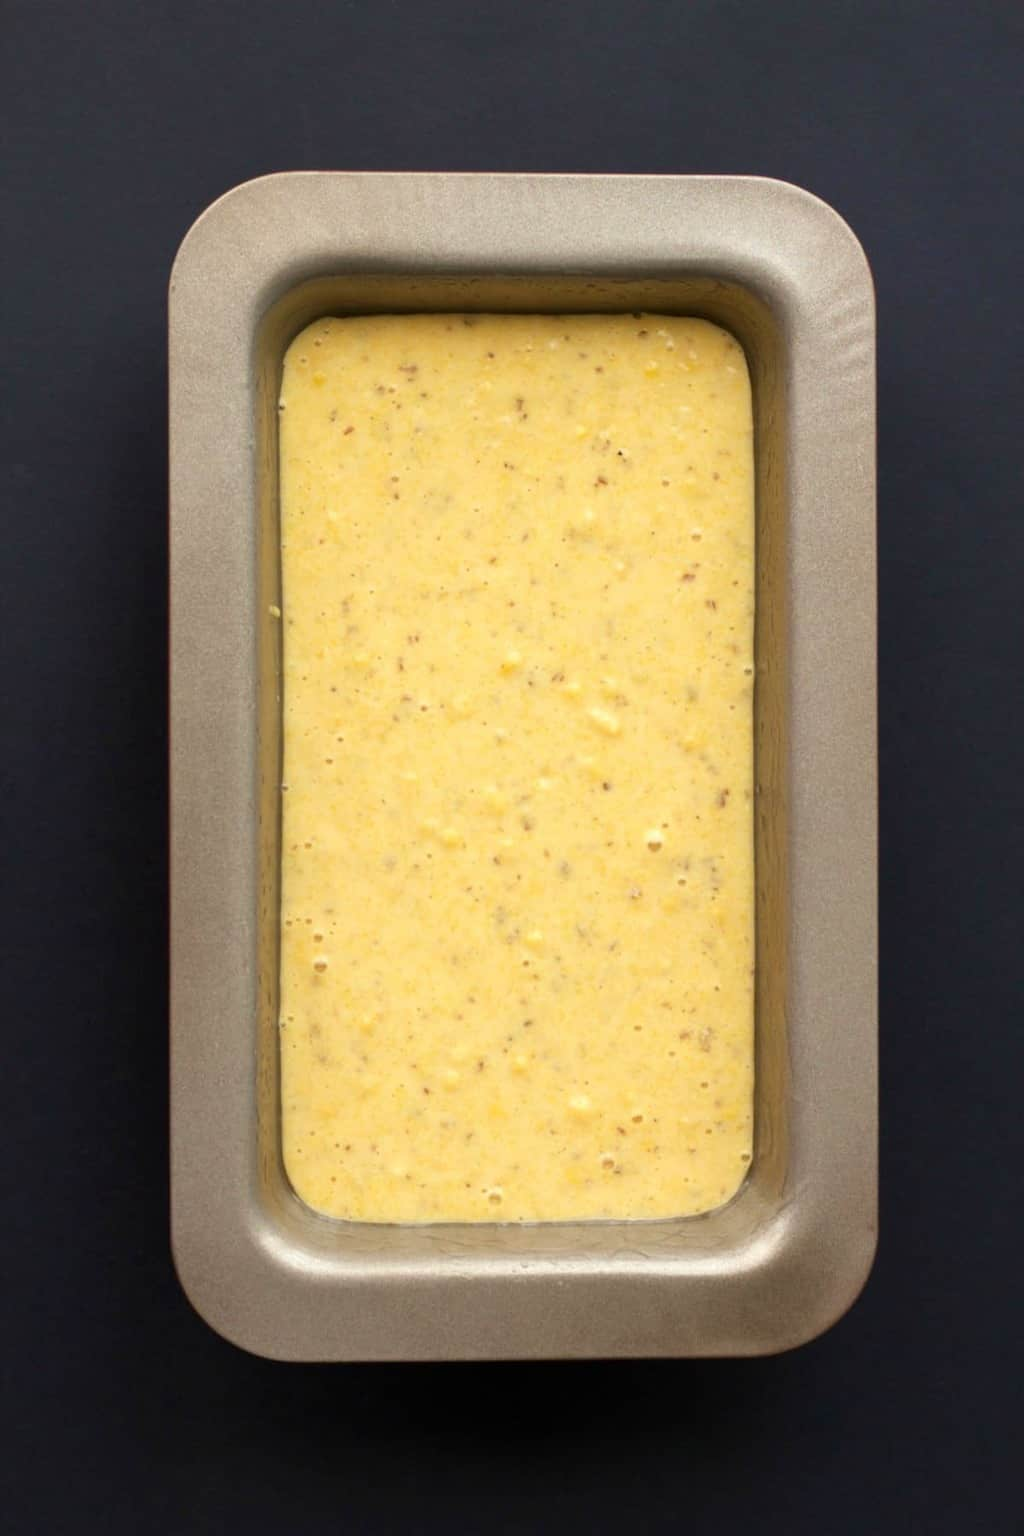 Vegan cornbread batter in a loaf pan ready to go into the oven.